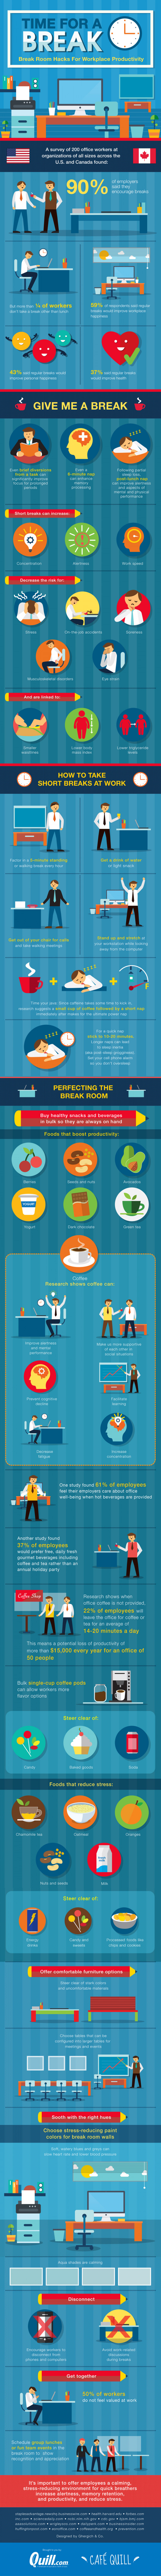 Time for a Break: Break Room Hacks for Workplace Productivity